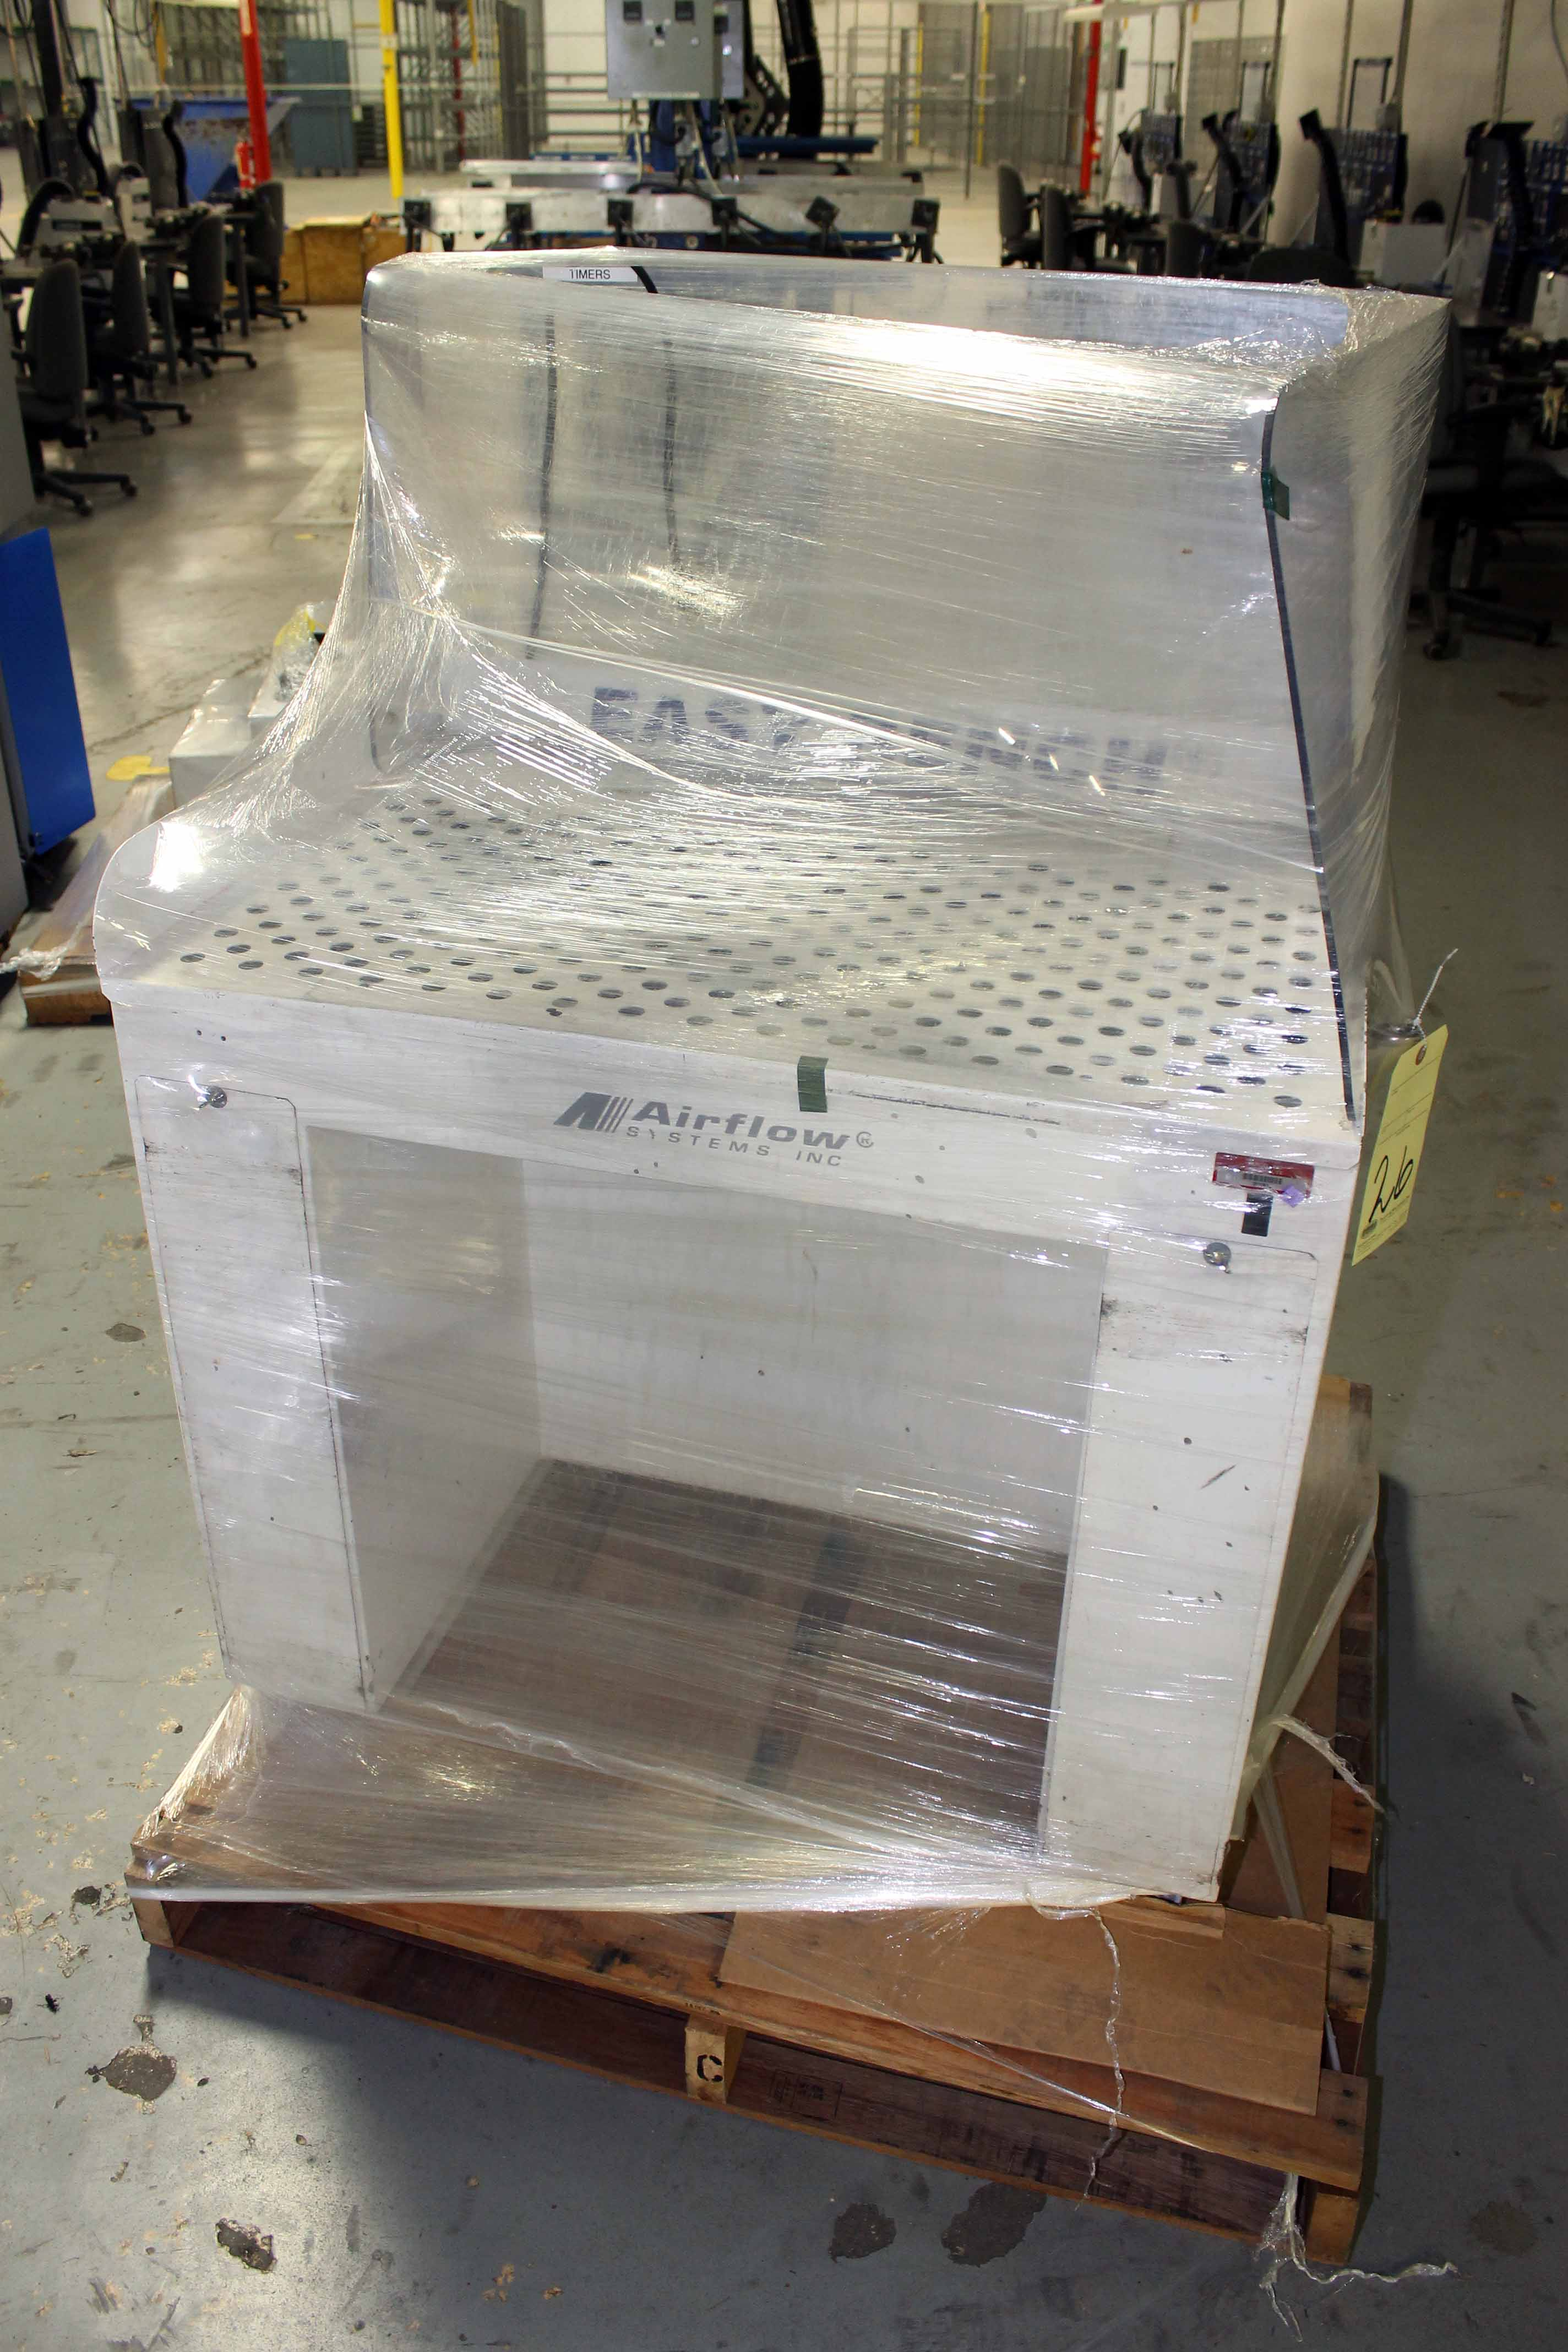 Lot 26 - DOWNDRAFT TABLE, AIRFLOW SYSTEMS MDL. EASY BENCH (Location 2 - Fallstone A)